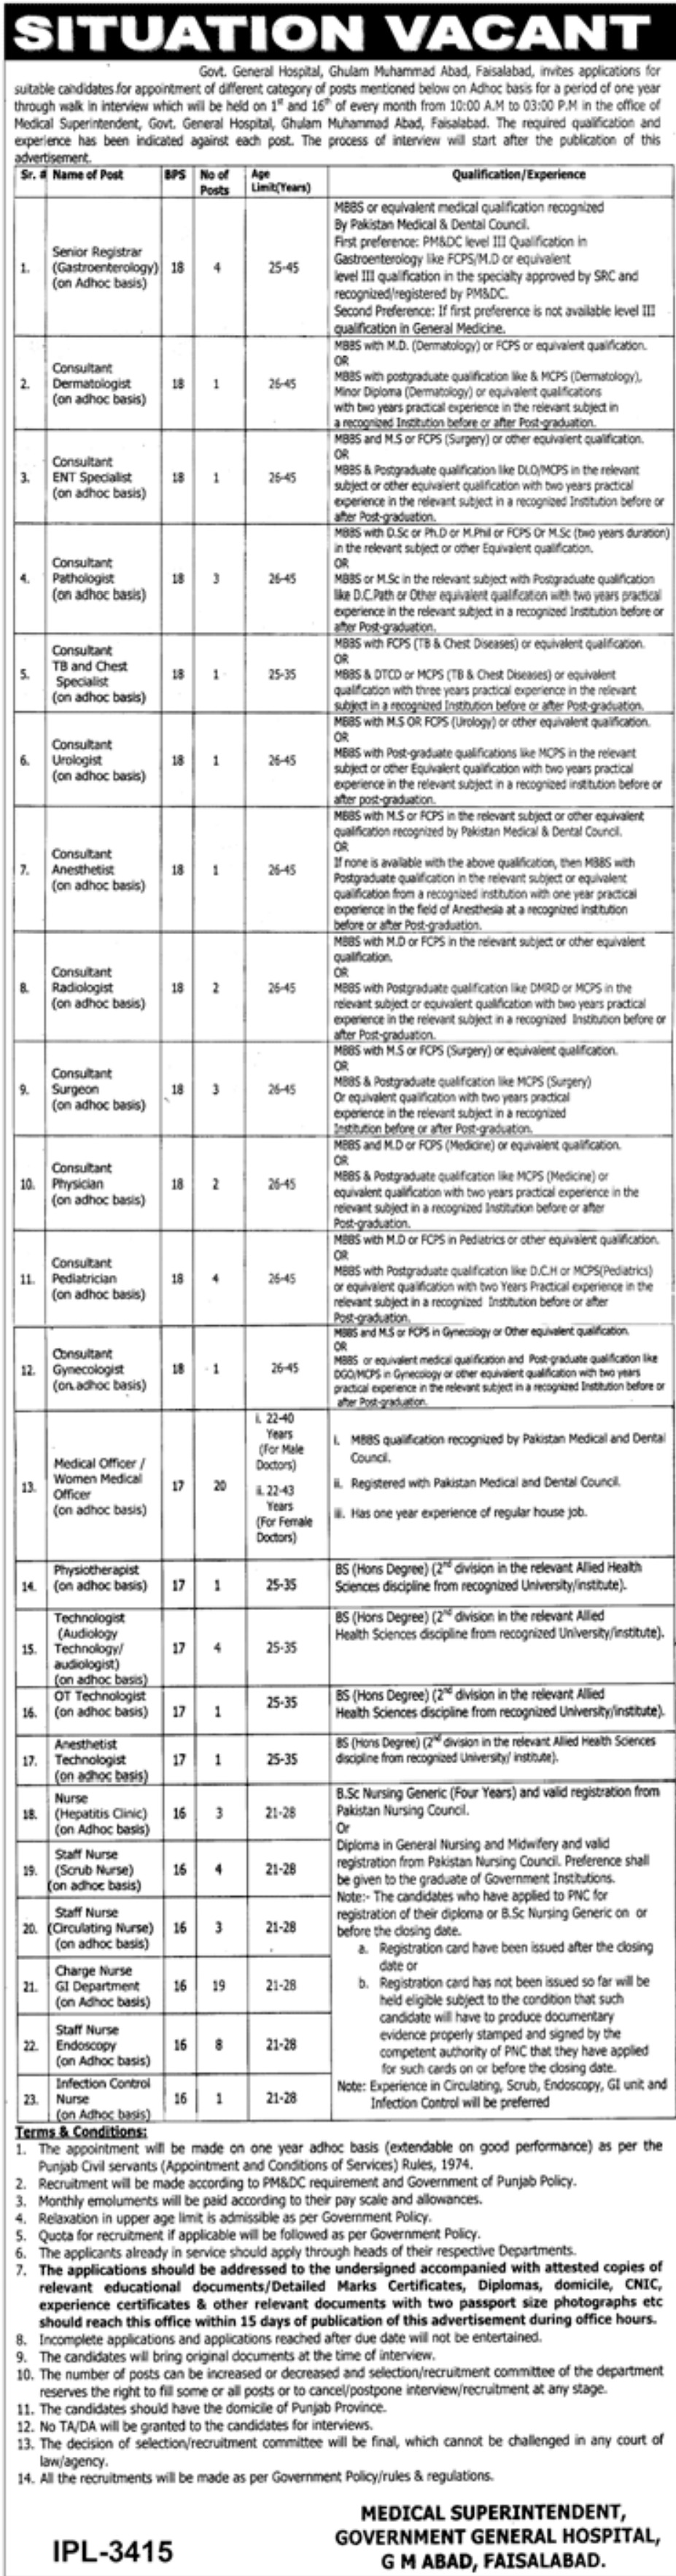 Government General Hospital Faisalabad Jobs 2019 Latest